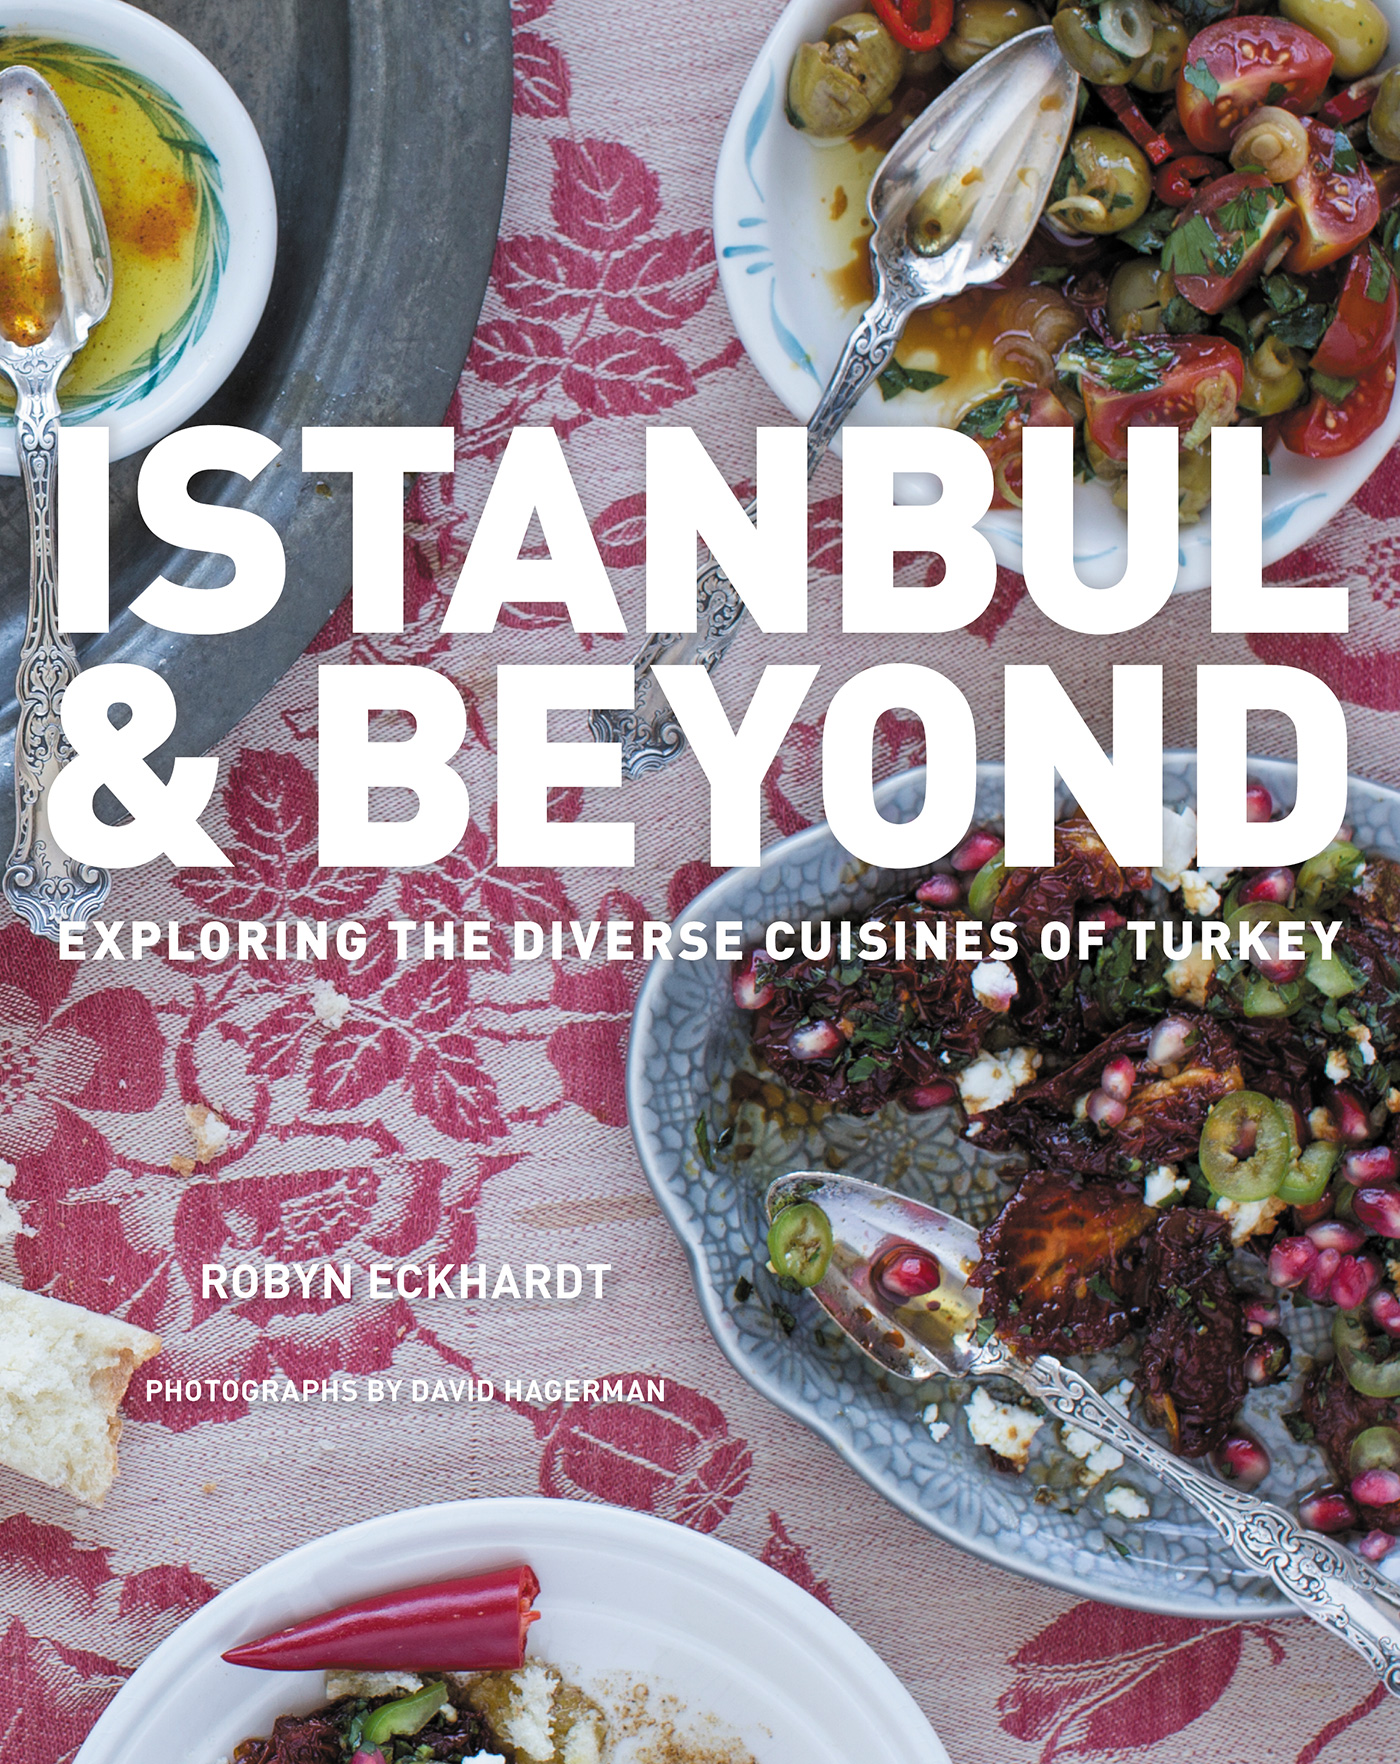 The cover of the book Istanbul and Beyond: Exploring the Diverse Cuisines of Turkey